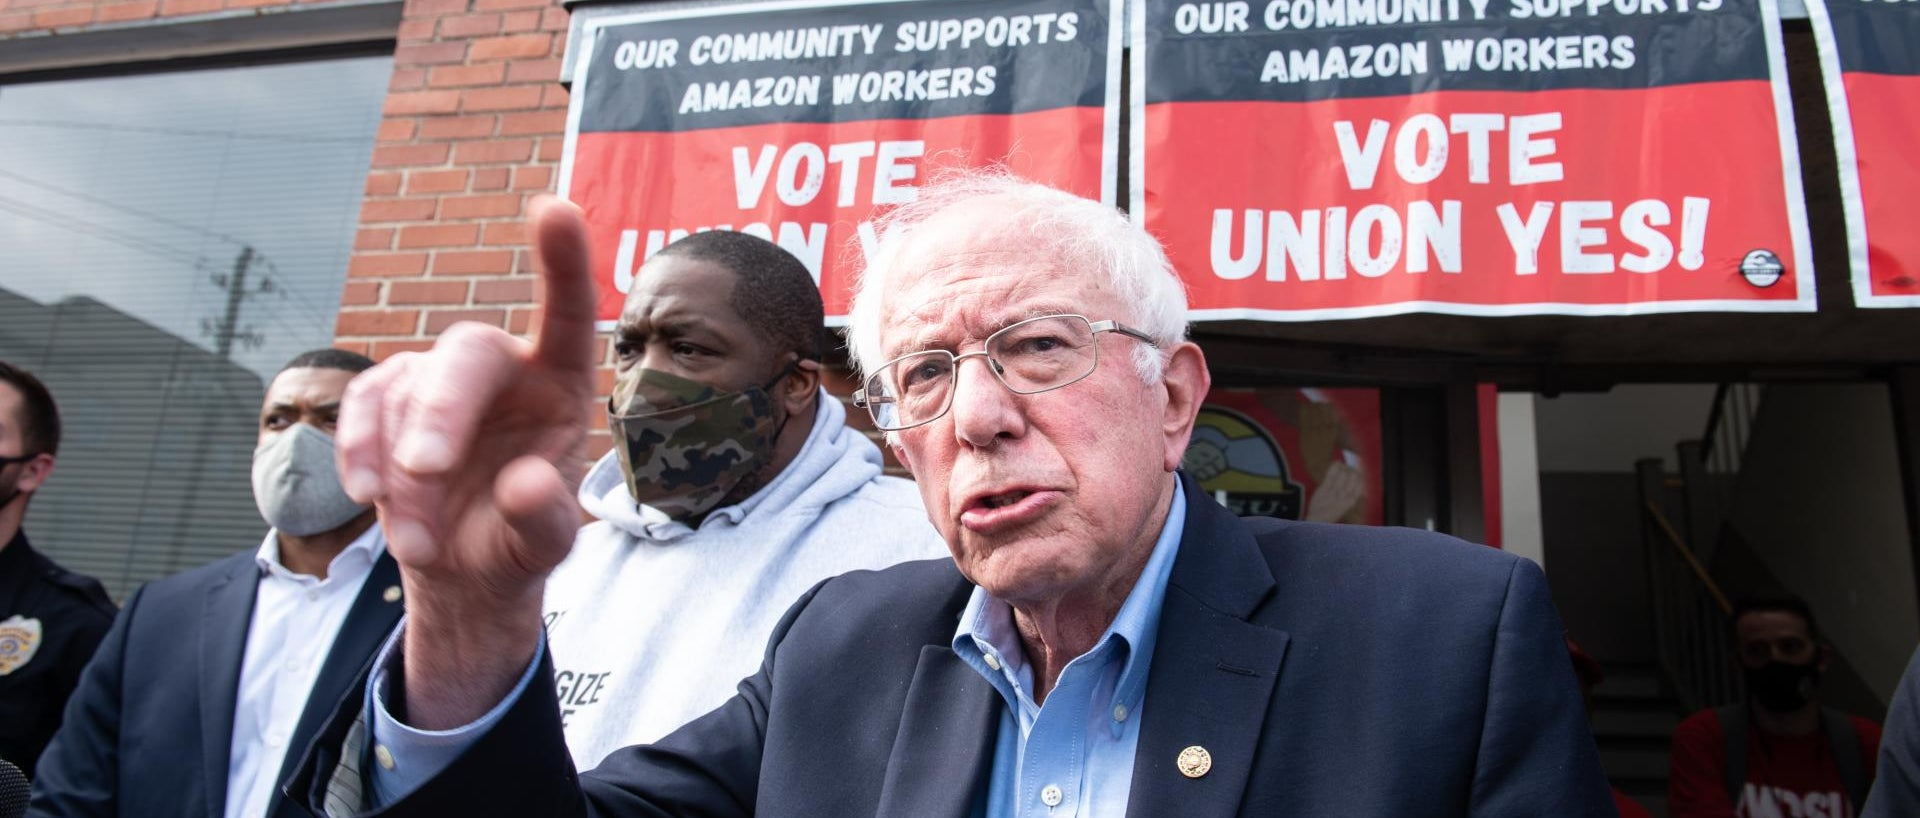 Senator Bernie Sanders, an independent from Vermont, center, speaks outside the Retail, Wholesale and Department Store Union (RWDSU) headquarters in Birmingham, Alabama, U.S., on Friday, March 26, 2021.